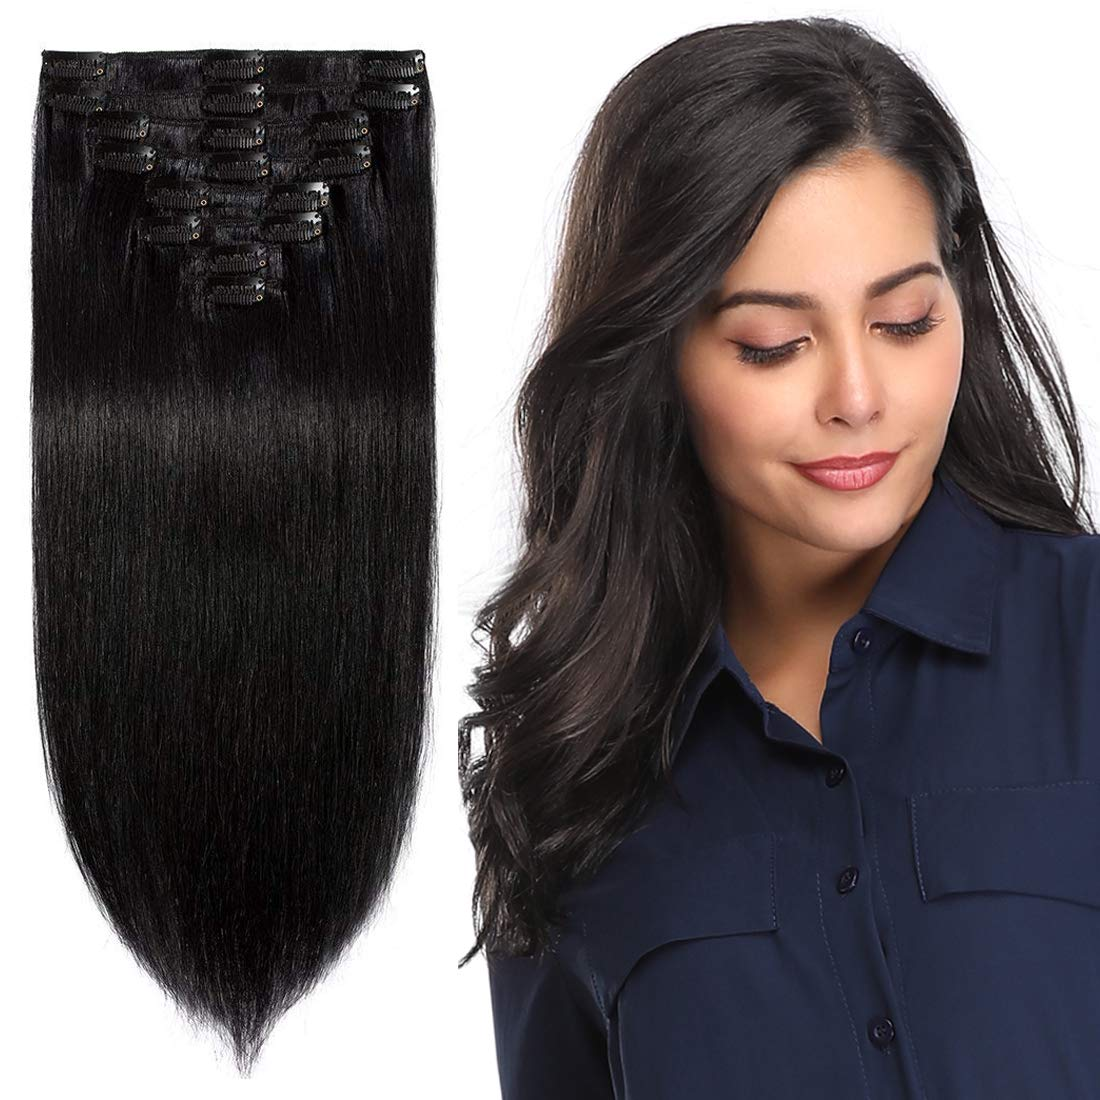 Amazon Com S Noilite Clip In Remy Human Hair Extension Short Hair Extension Clip On Full Head 8 Pieces Set Very Soft Style Real Silky For Beauty Straight 10 Inch 1b Natural Black Beauty